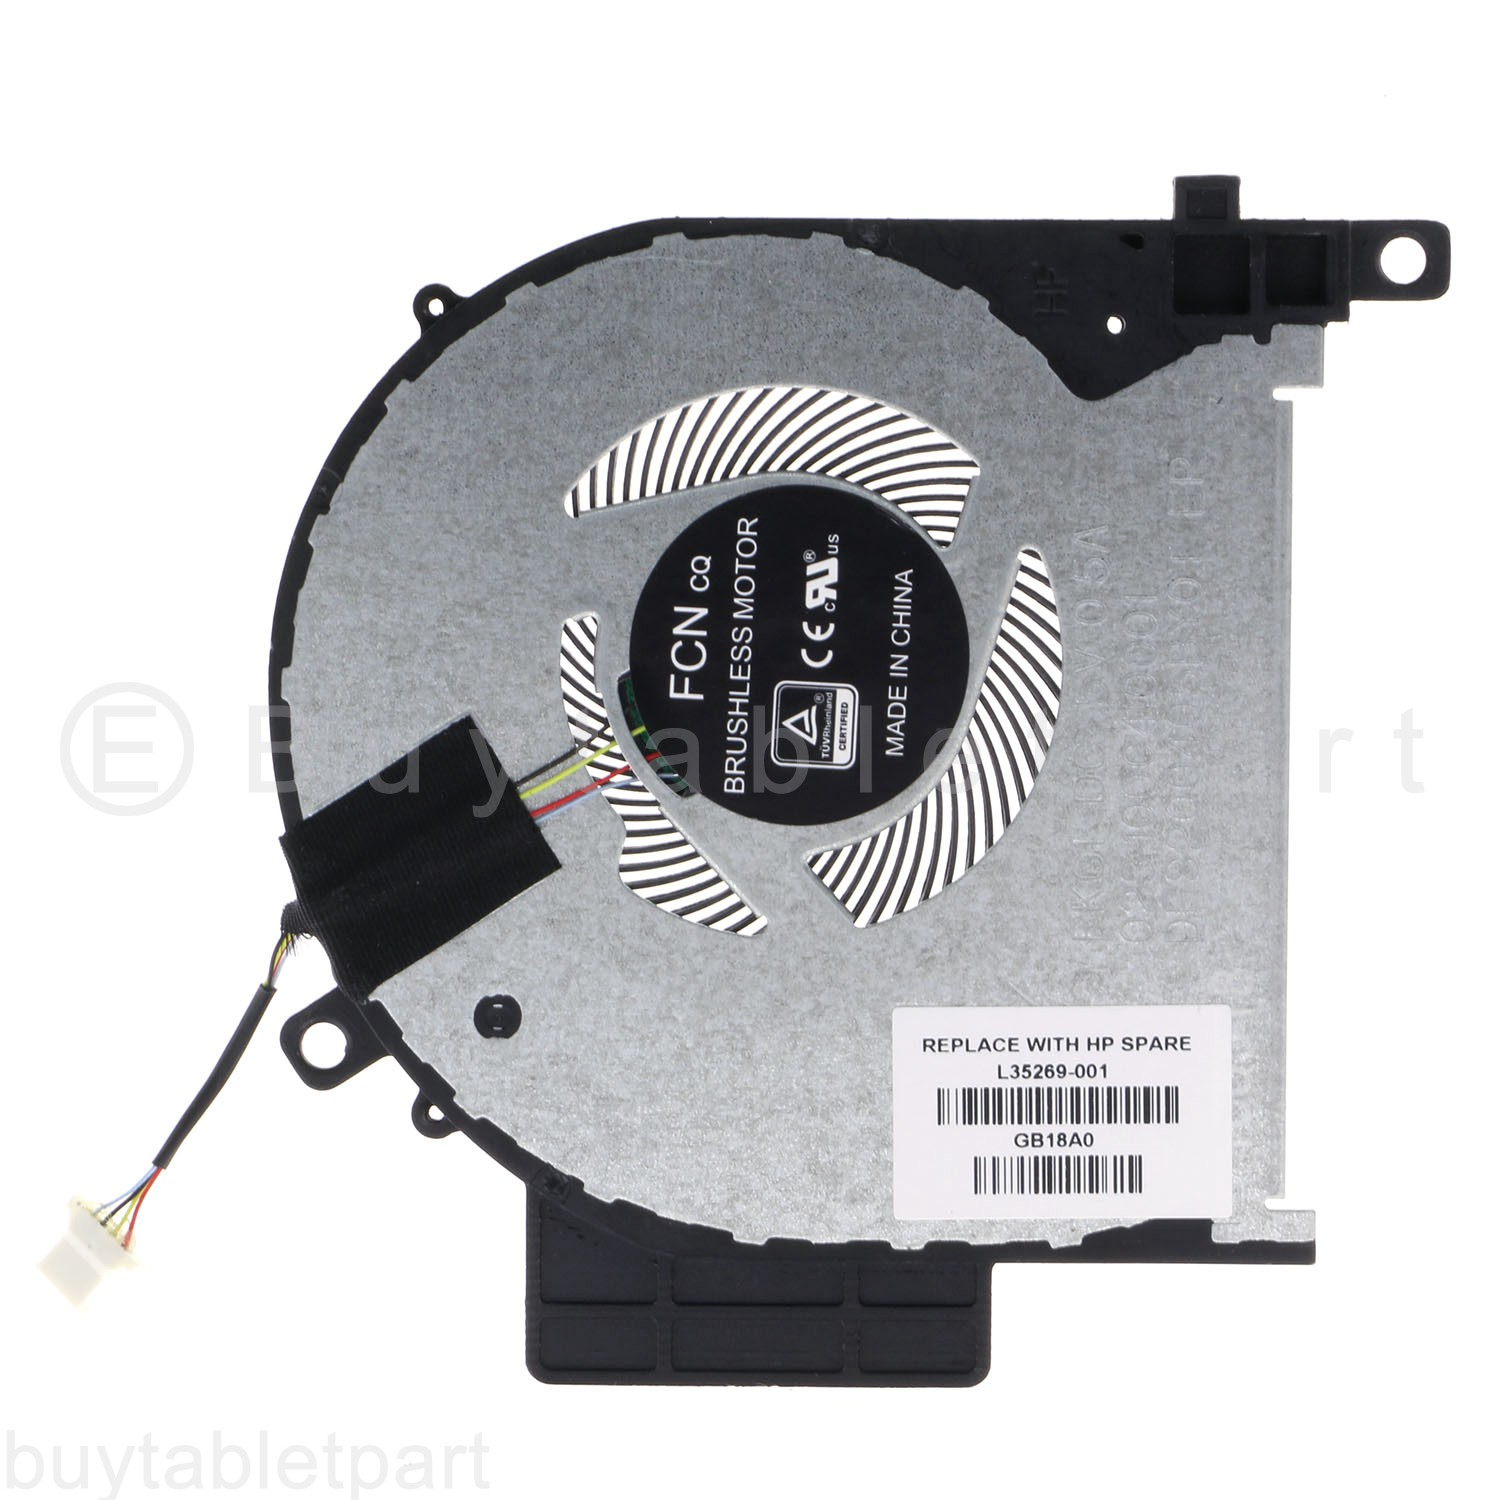 New CPU Cooling Fan For Hp Thermal Module X360 15-W154NR 807524-001